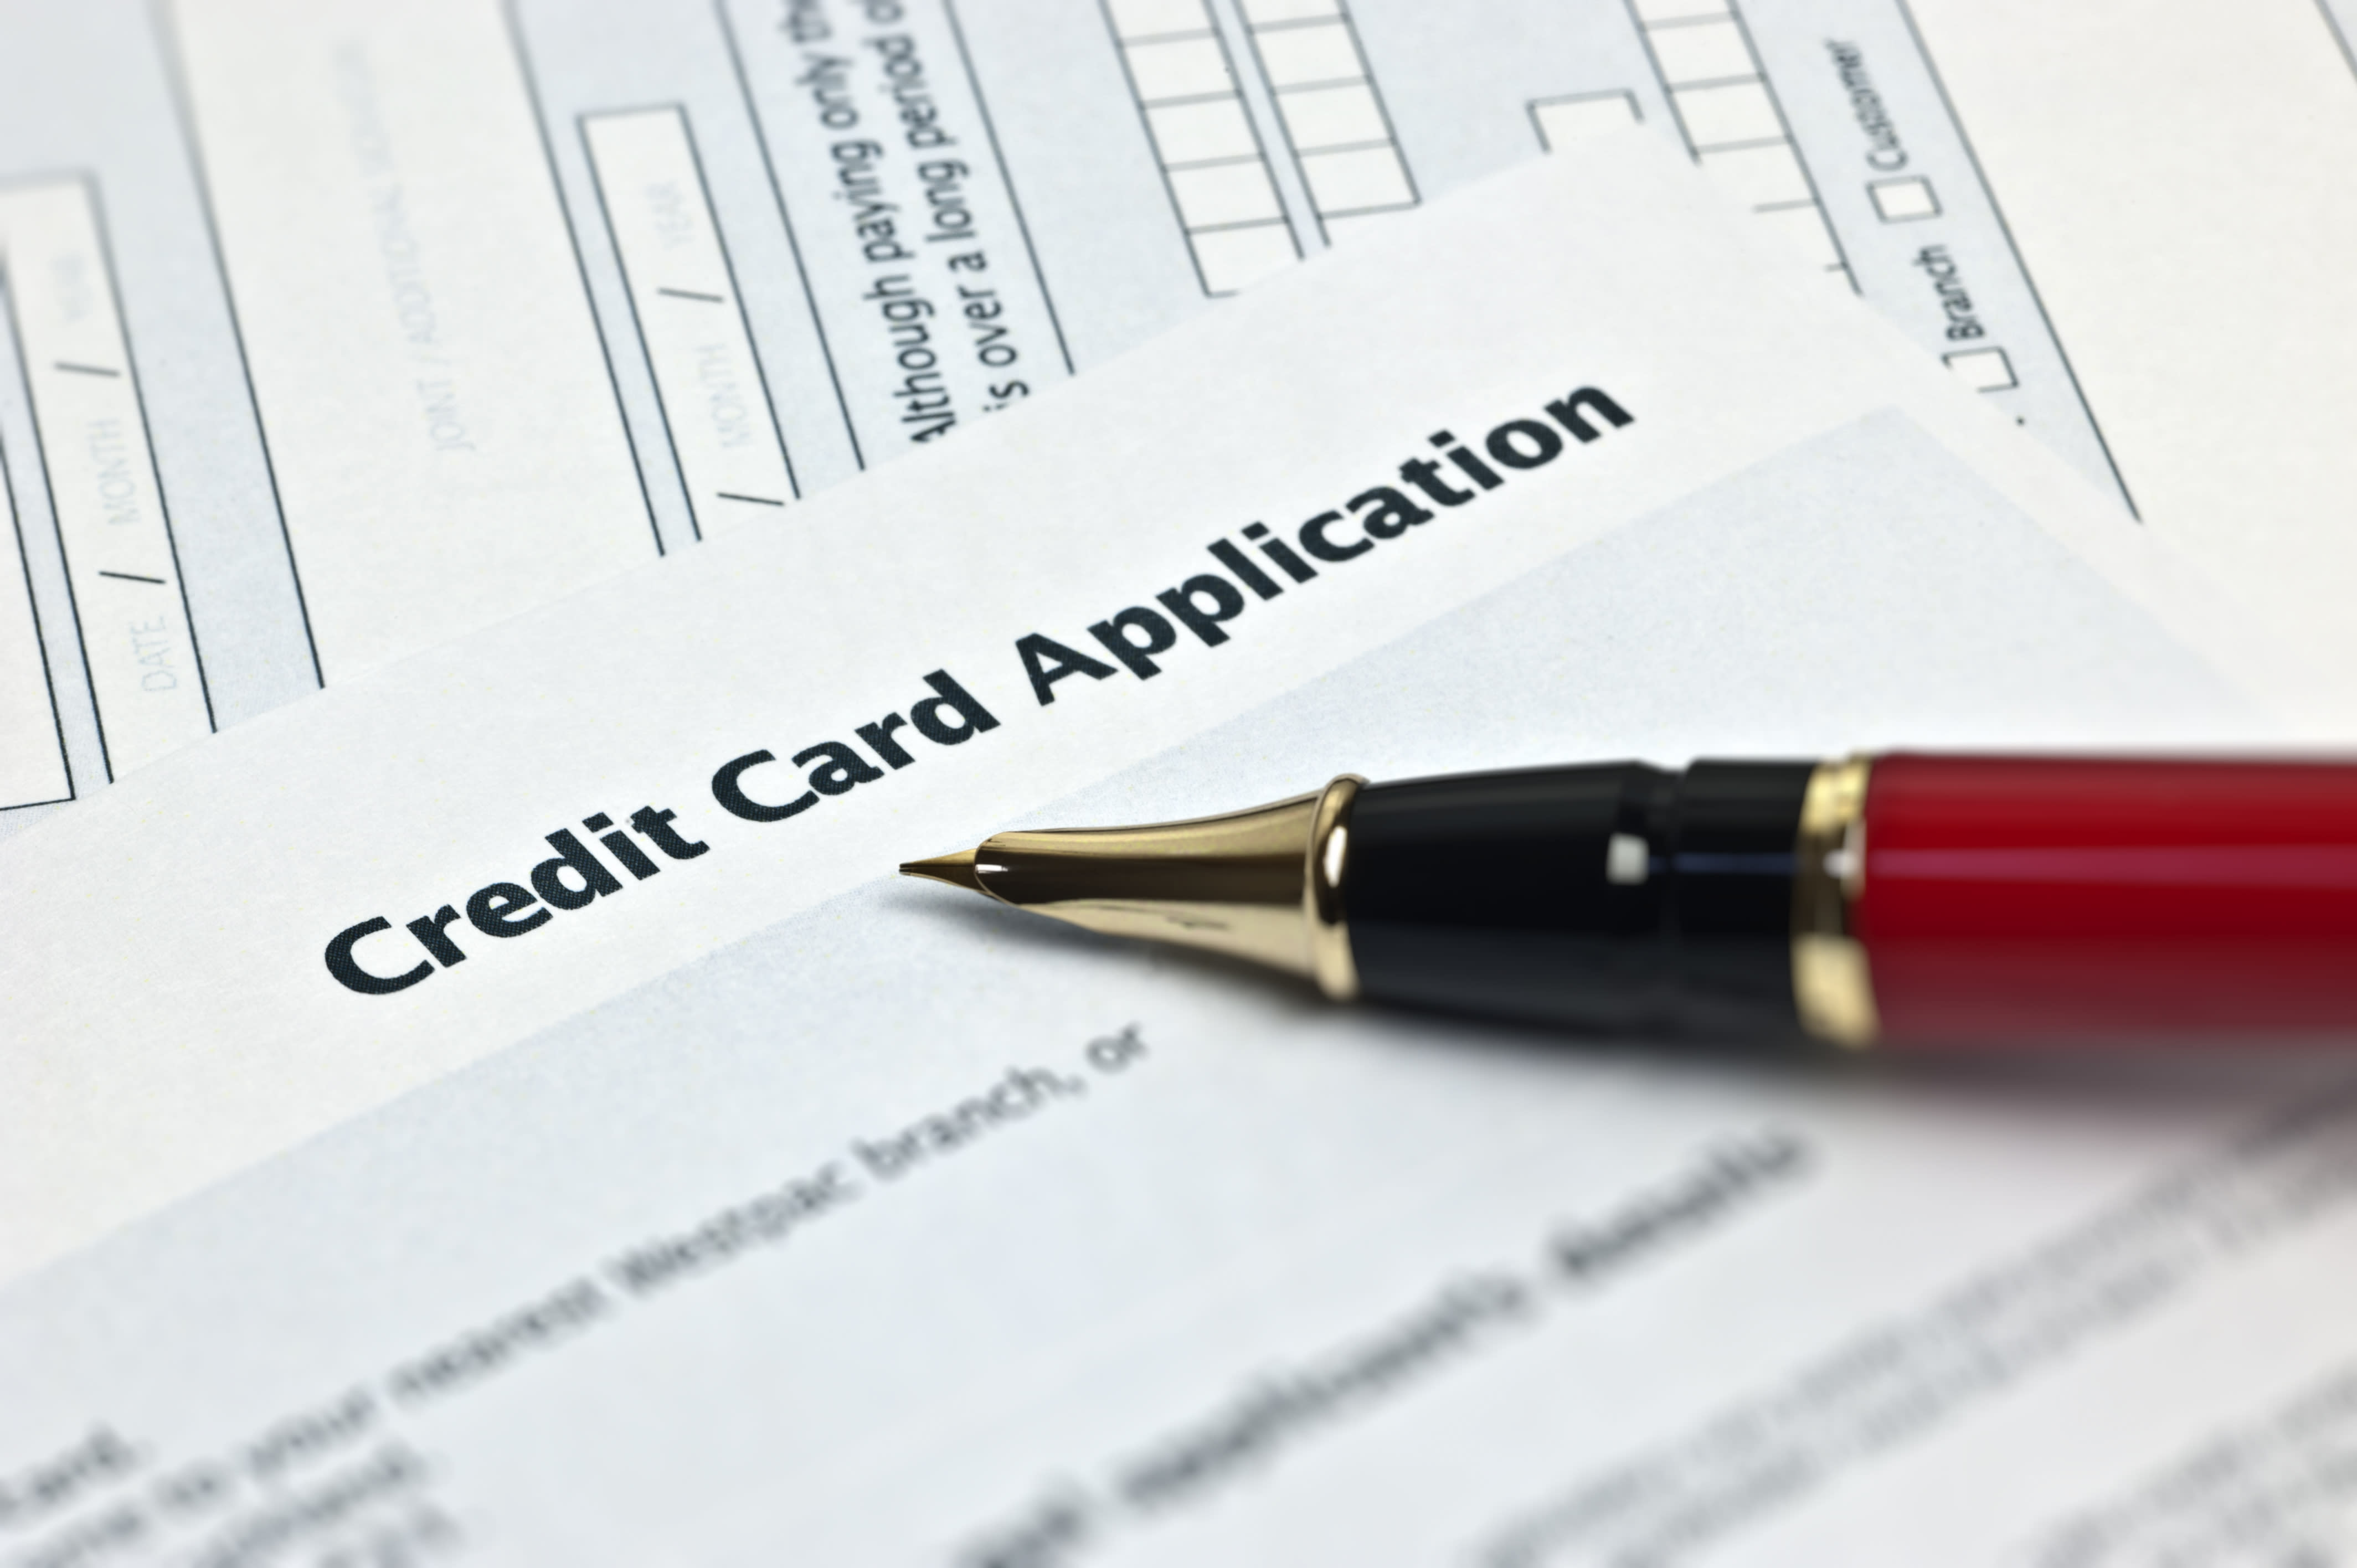 How to apply for a business credit card